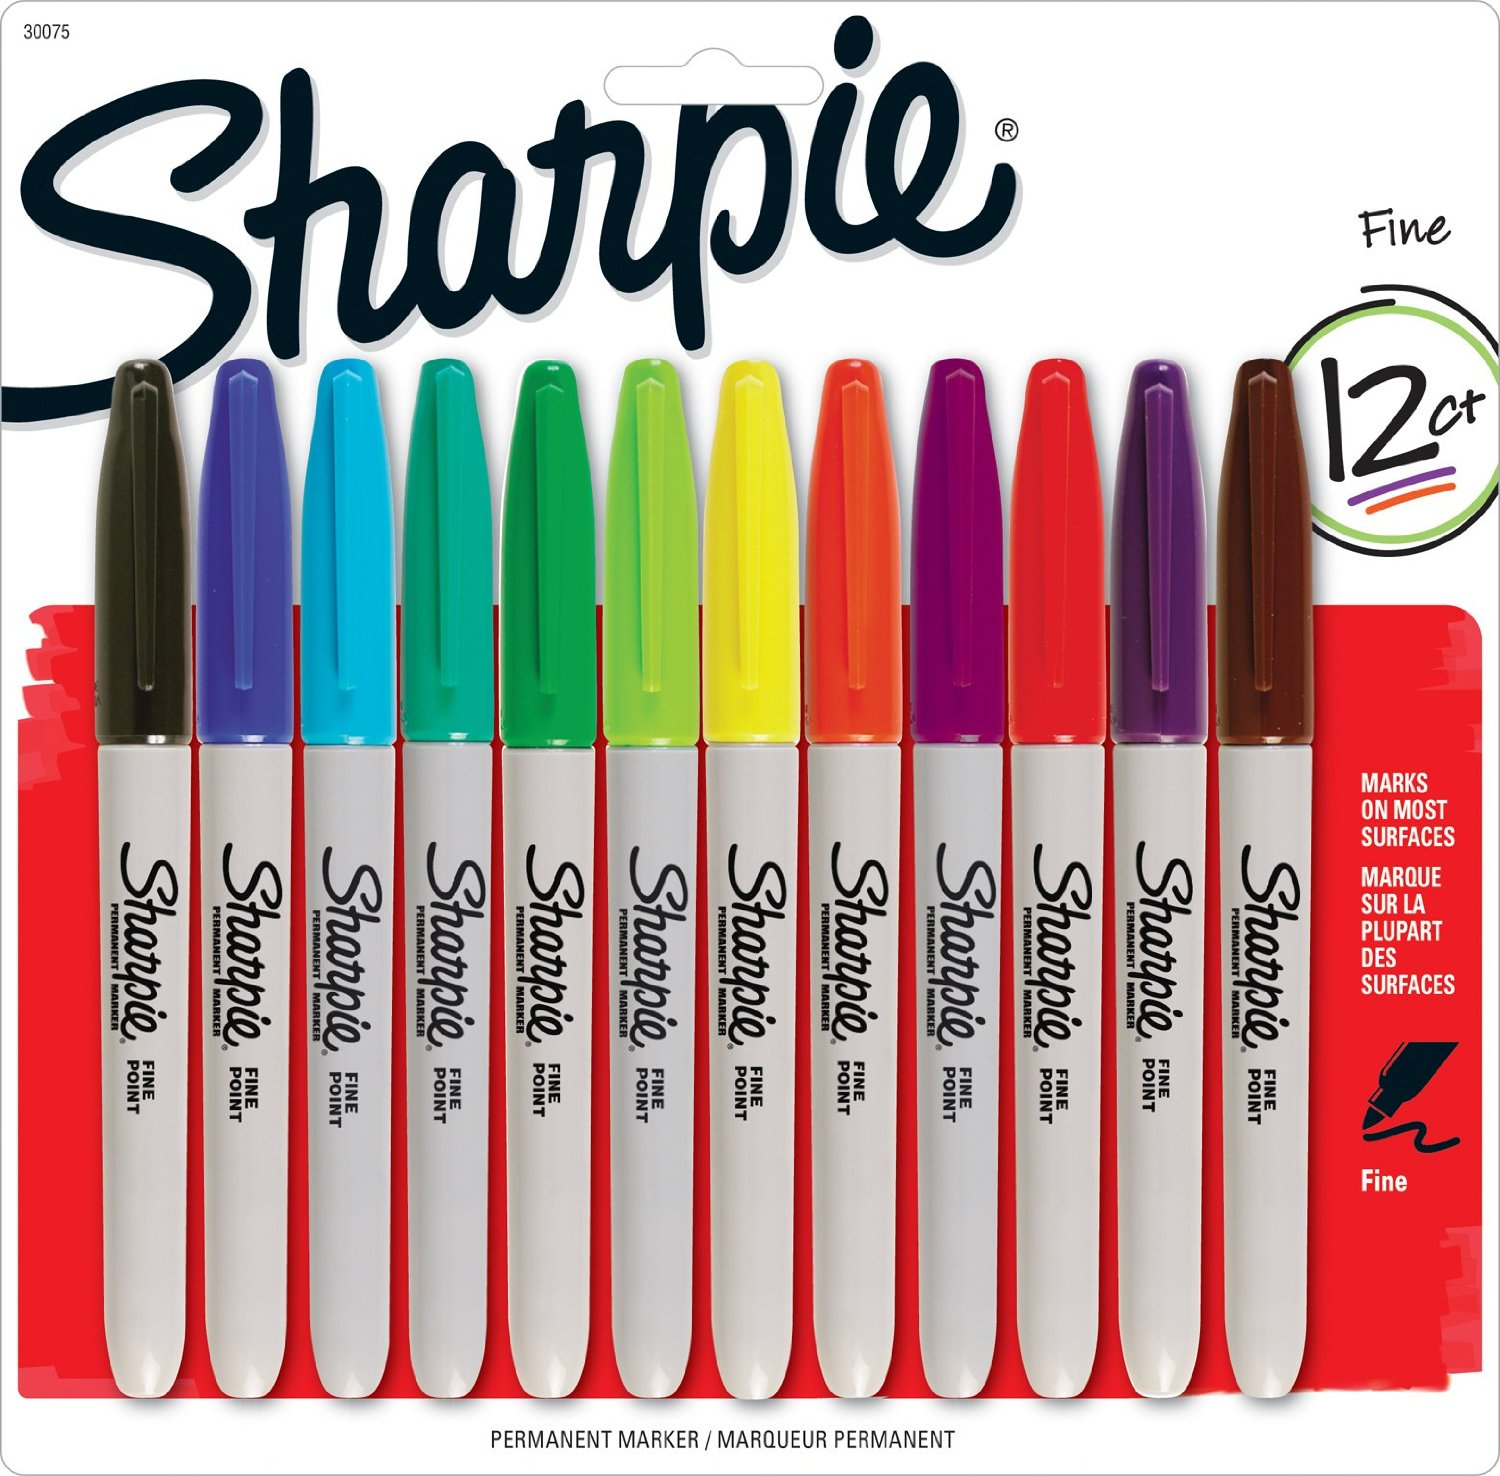 81f0W xIoEL. SL1500  Walgreens: Sharpie Fine Point or Mr. Sketch Scented Markers Only $2.99